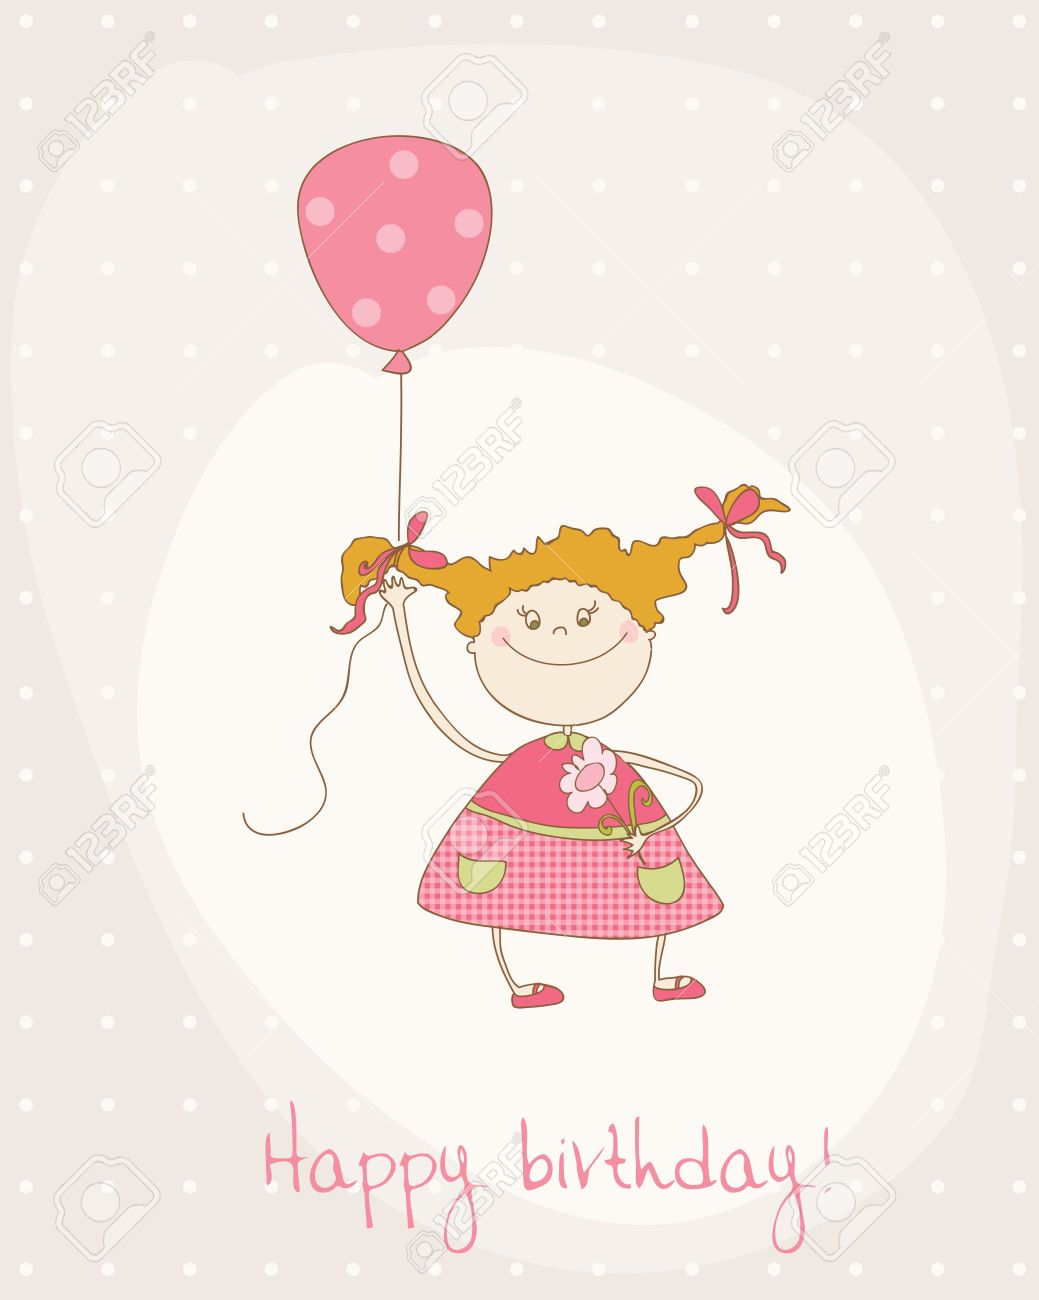 Greeting Birthday Card With Cute Girl Royalty Free Cliparts – Birthday Cards Baby